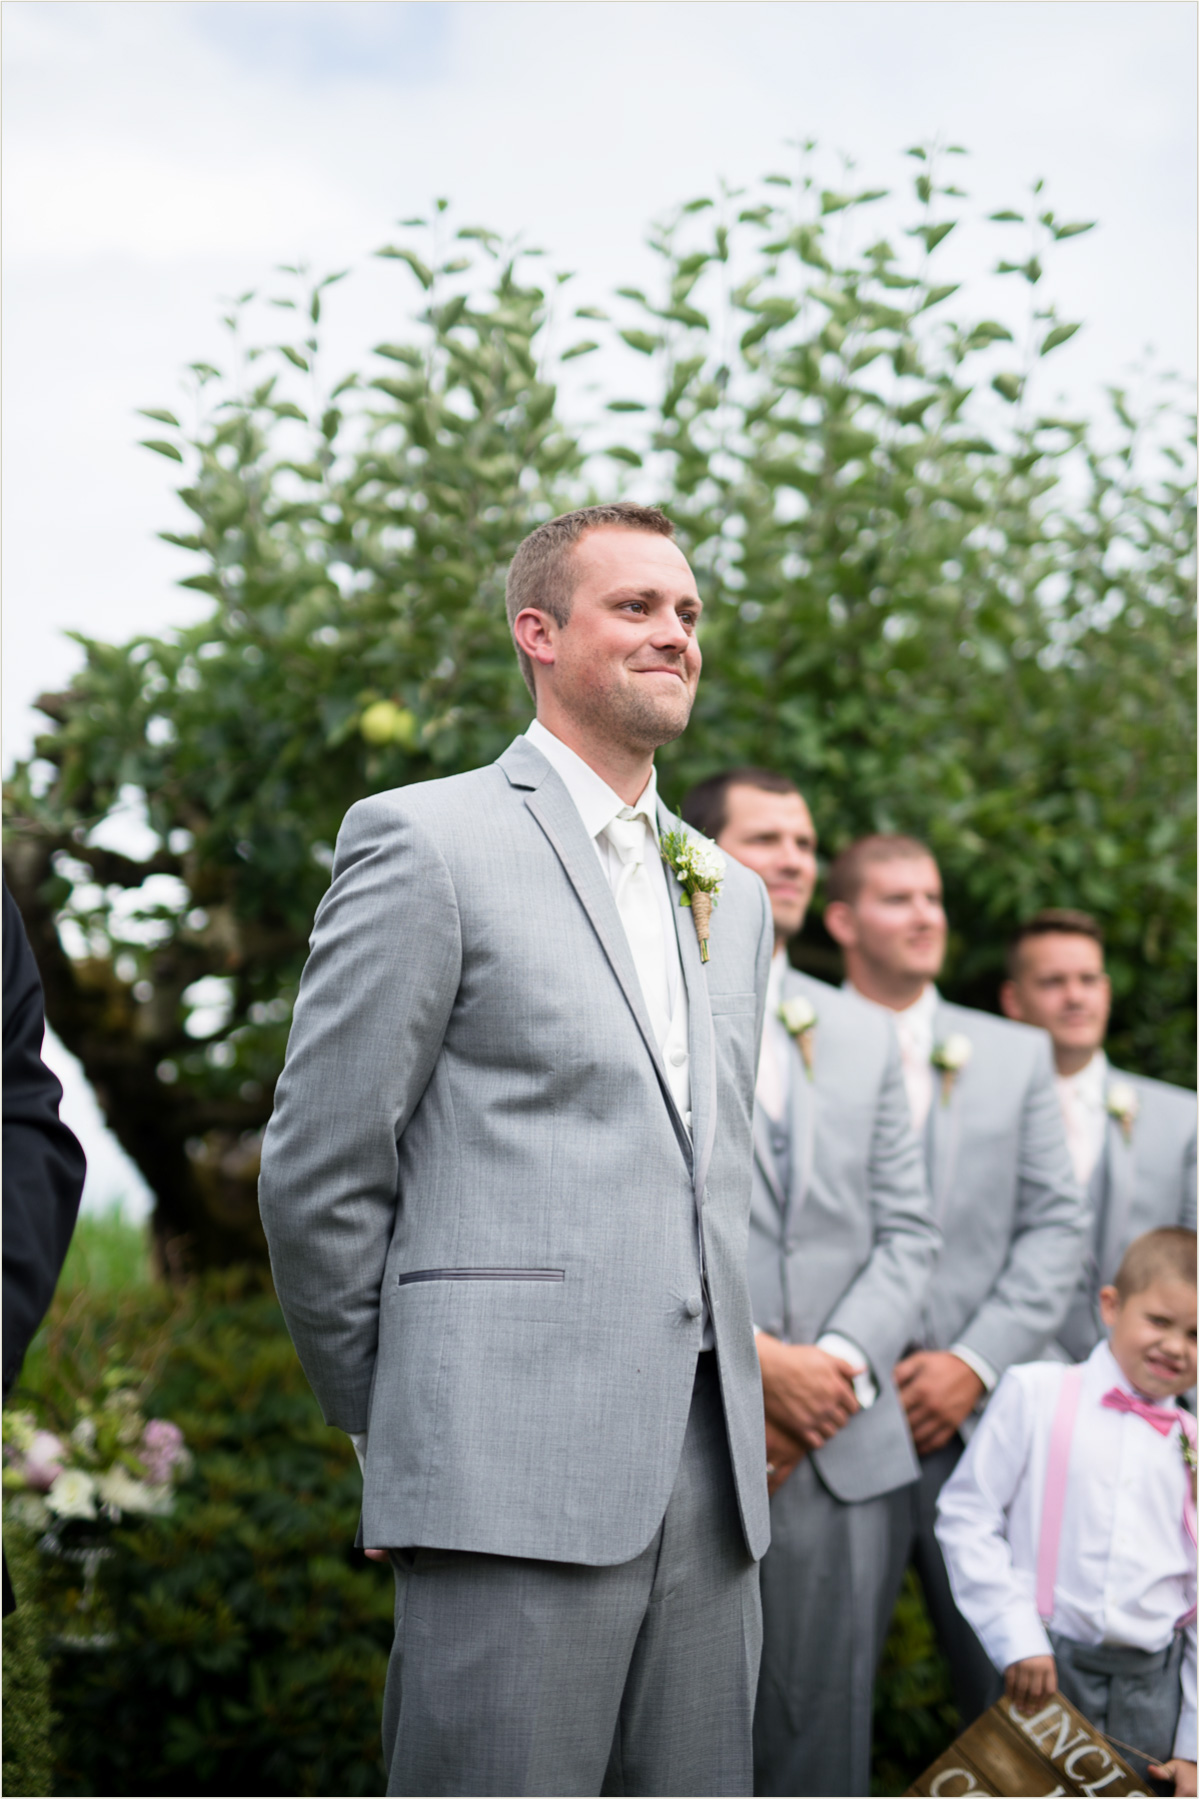 Emotional Groom Watching Bride Walking Down Aisle